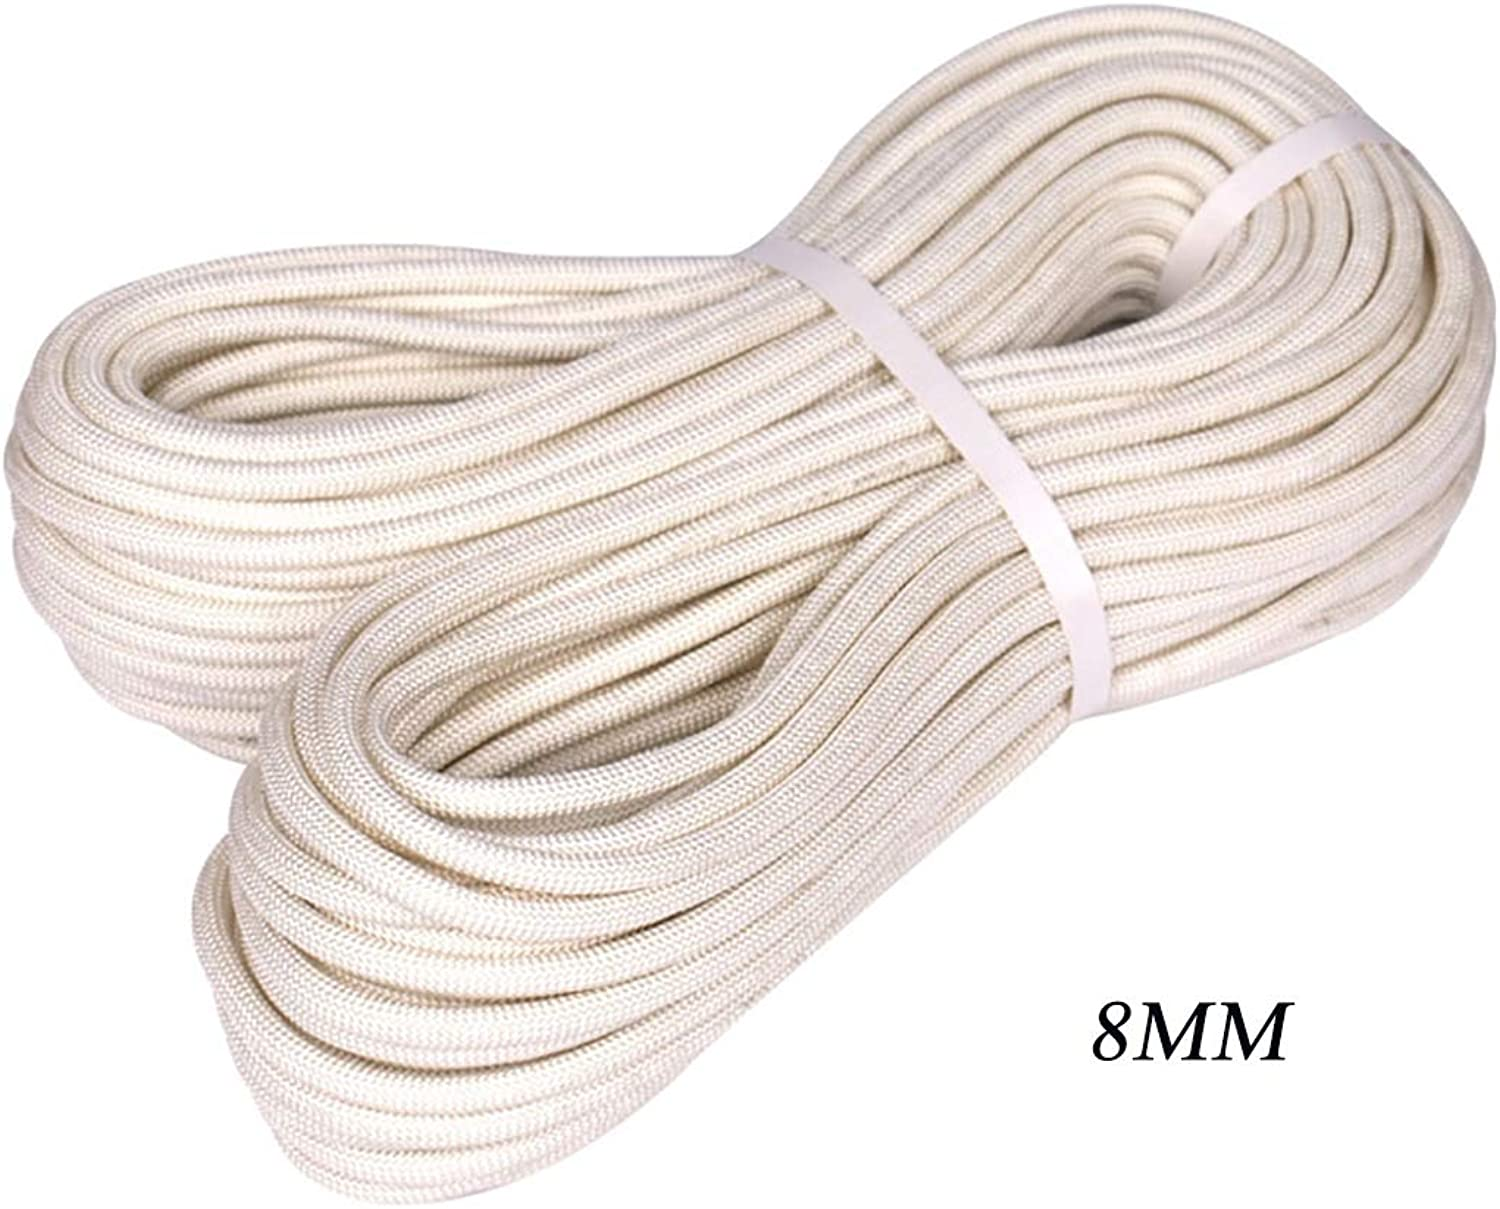 Safety Rope Outdoor Static Ropes Suitable for Downhill Outdoor Development Aerial Work Φ8mm (0.31in) White